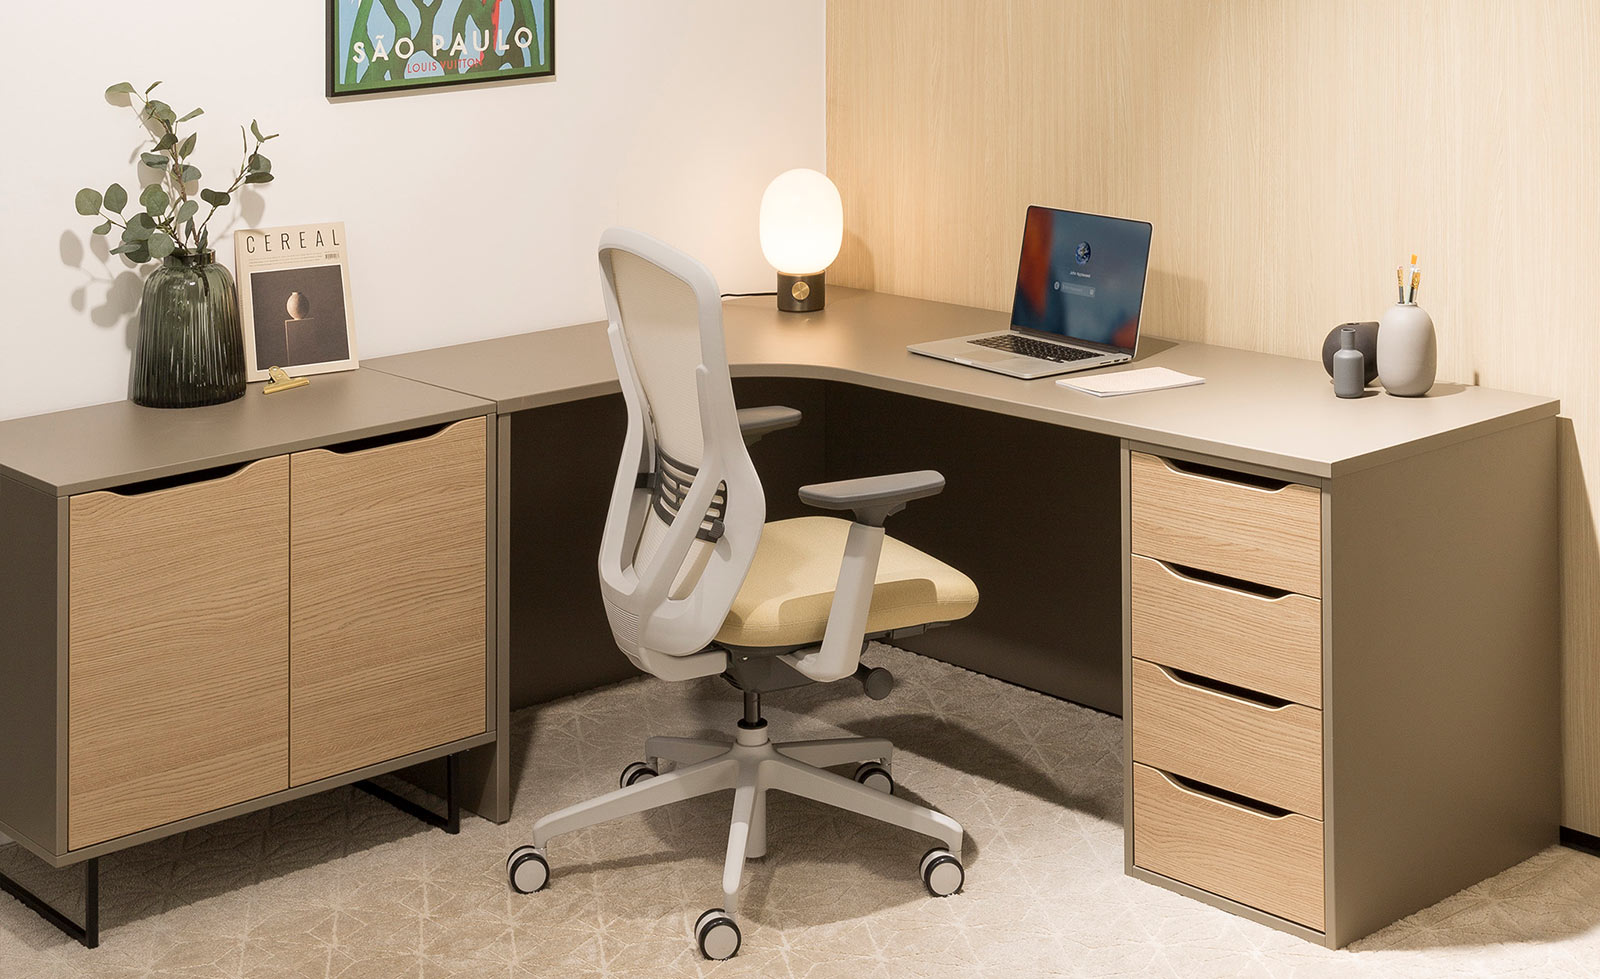 Think Furniture - Home Office Furniture - Home Working Bundles